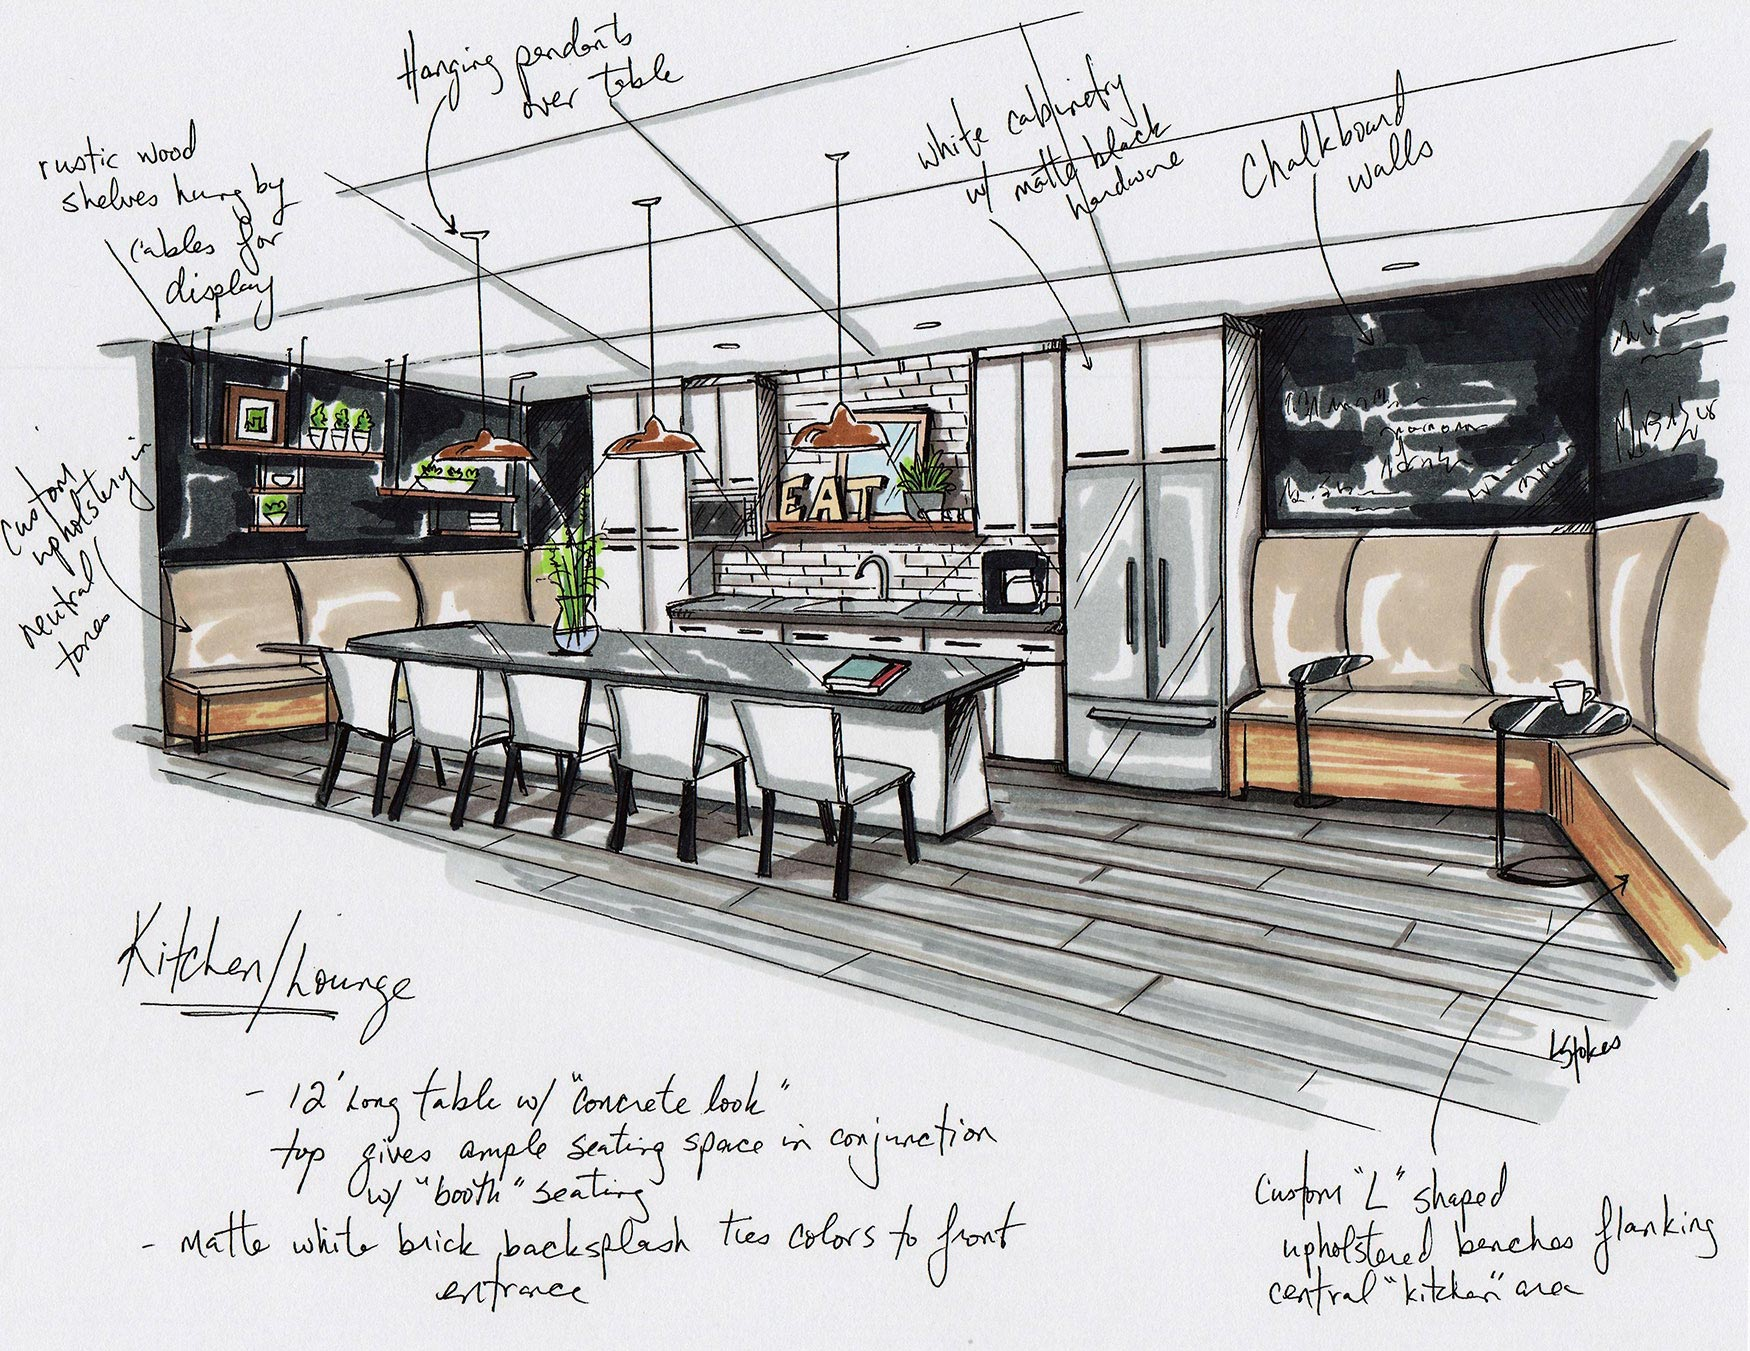 Interior Design Sketches of Evolve College's Kitchen